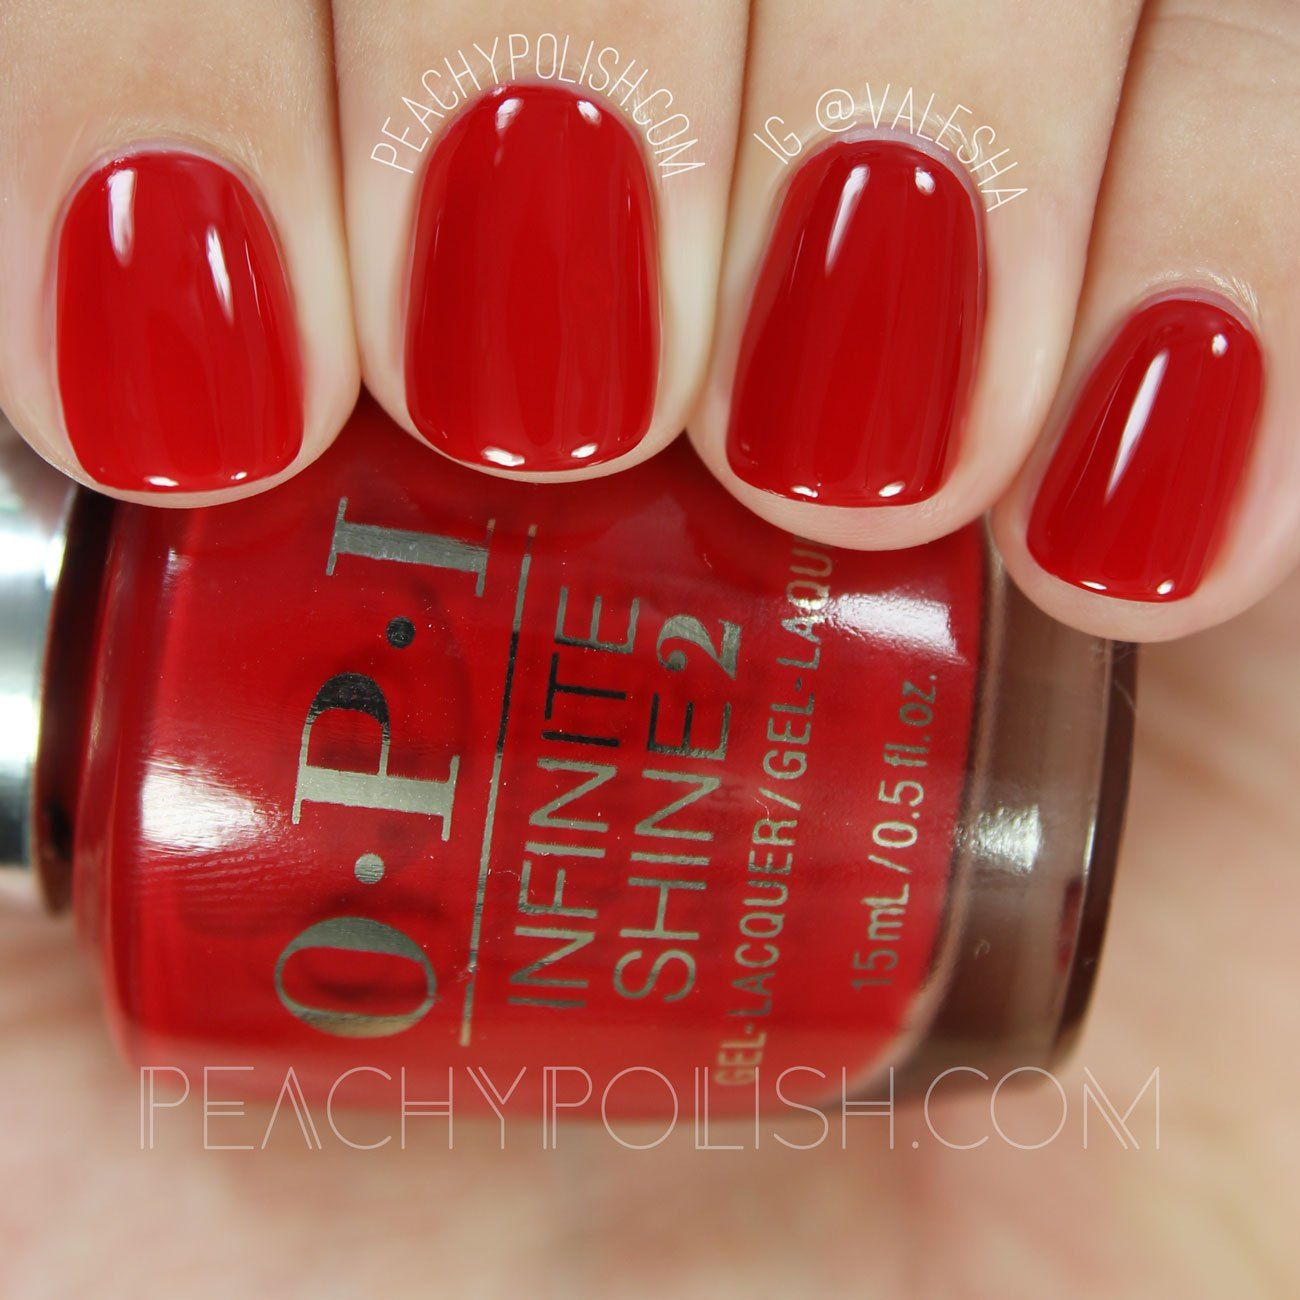 nails.quenalbertini: OPI Big Apple Red, Infinite Shine Iconic ...